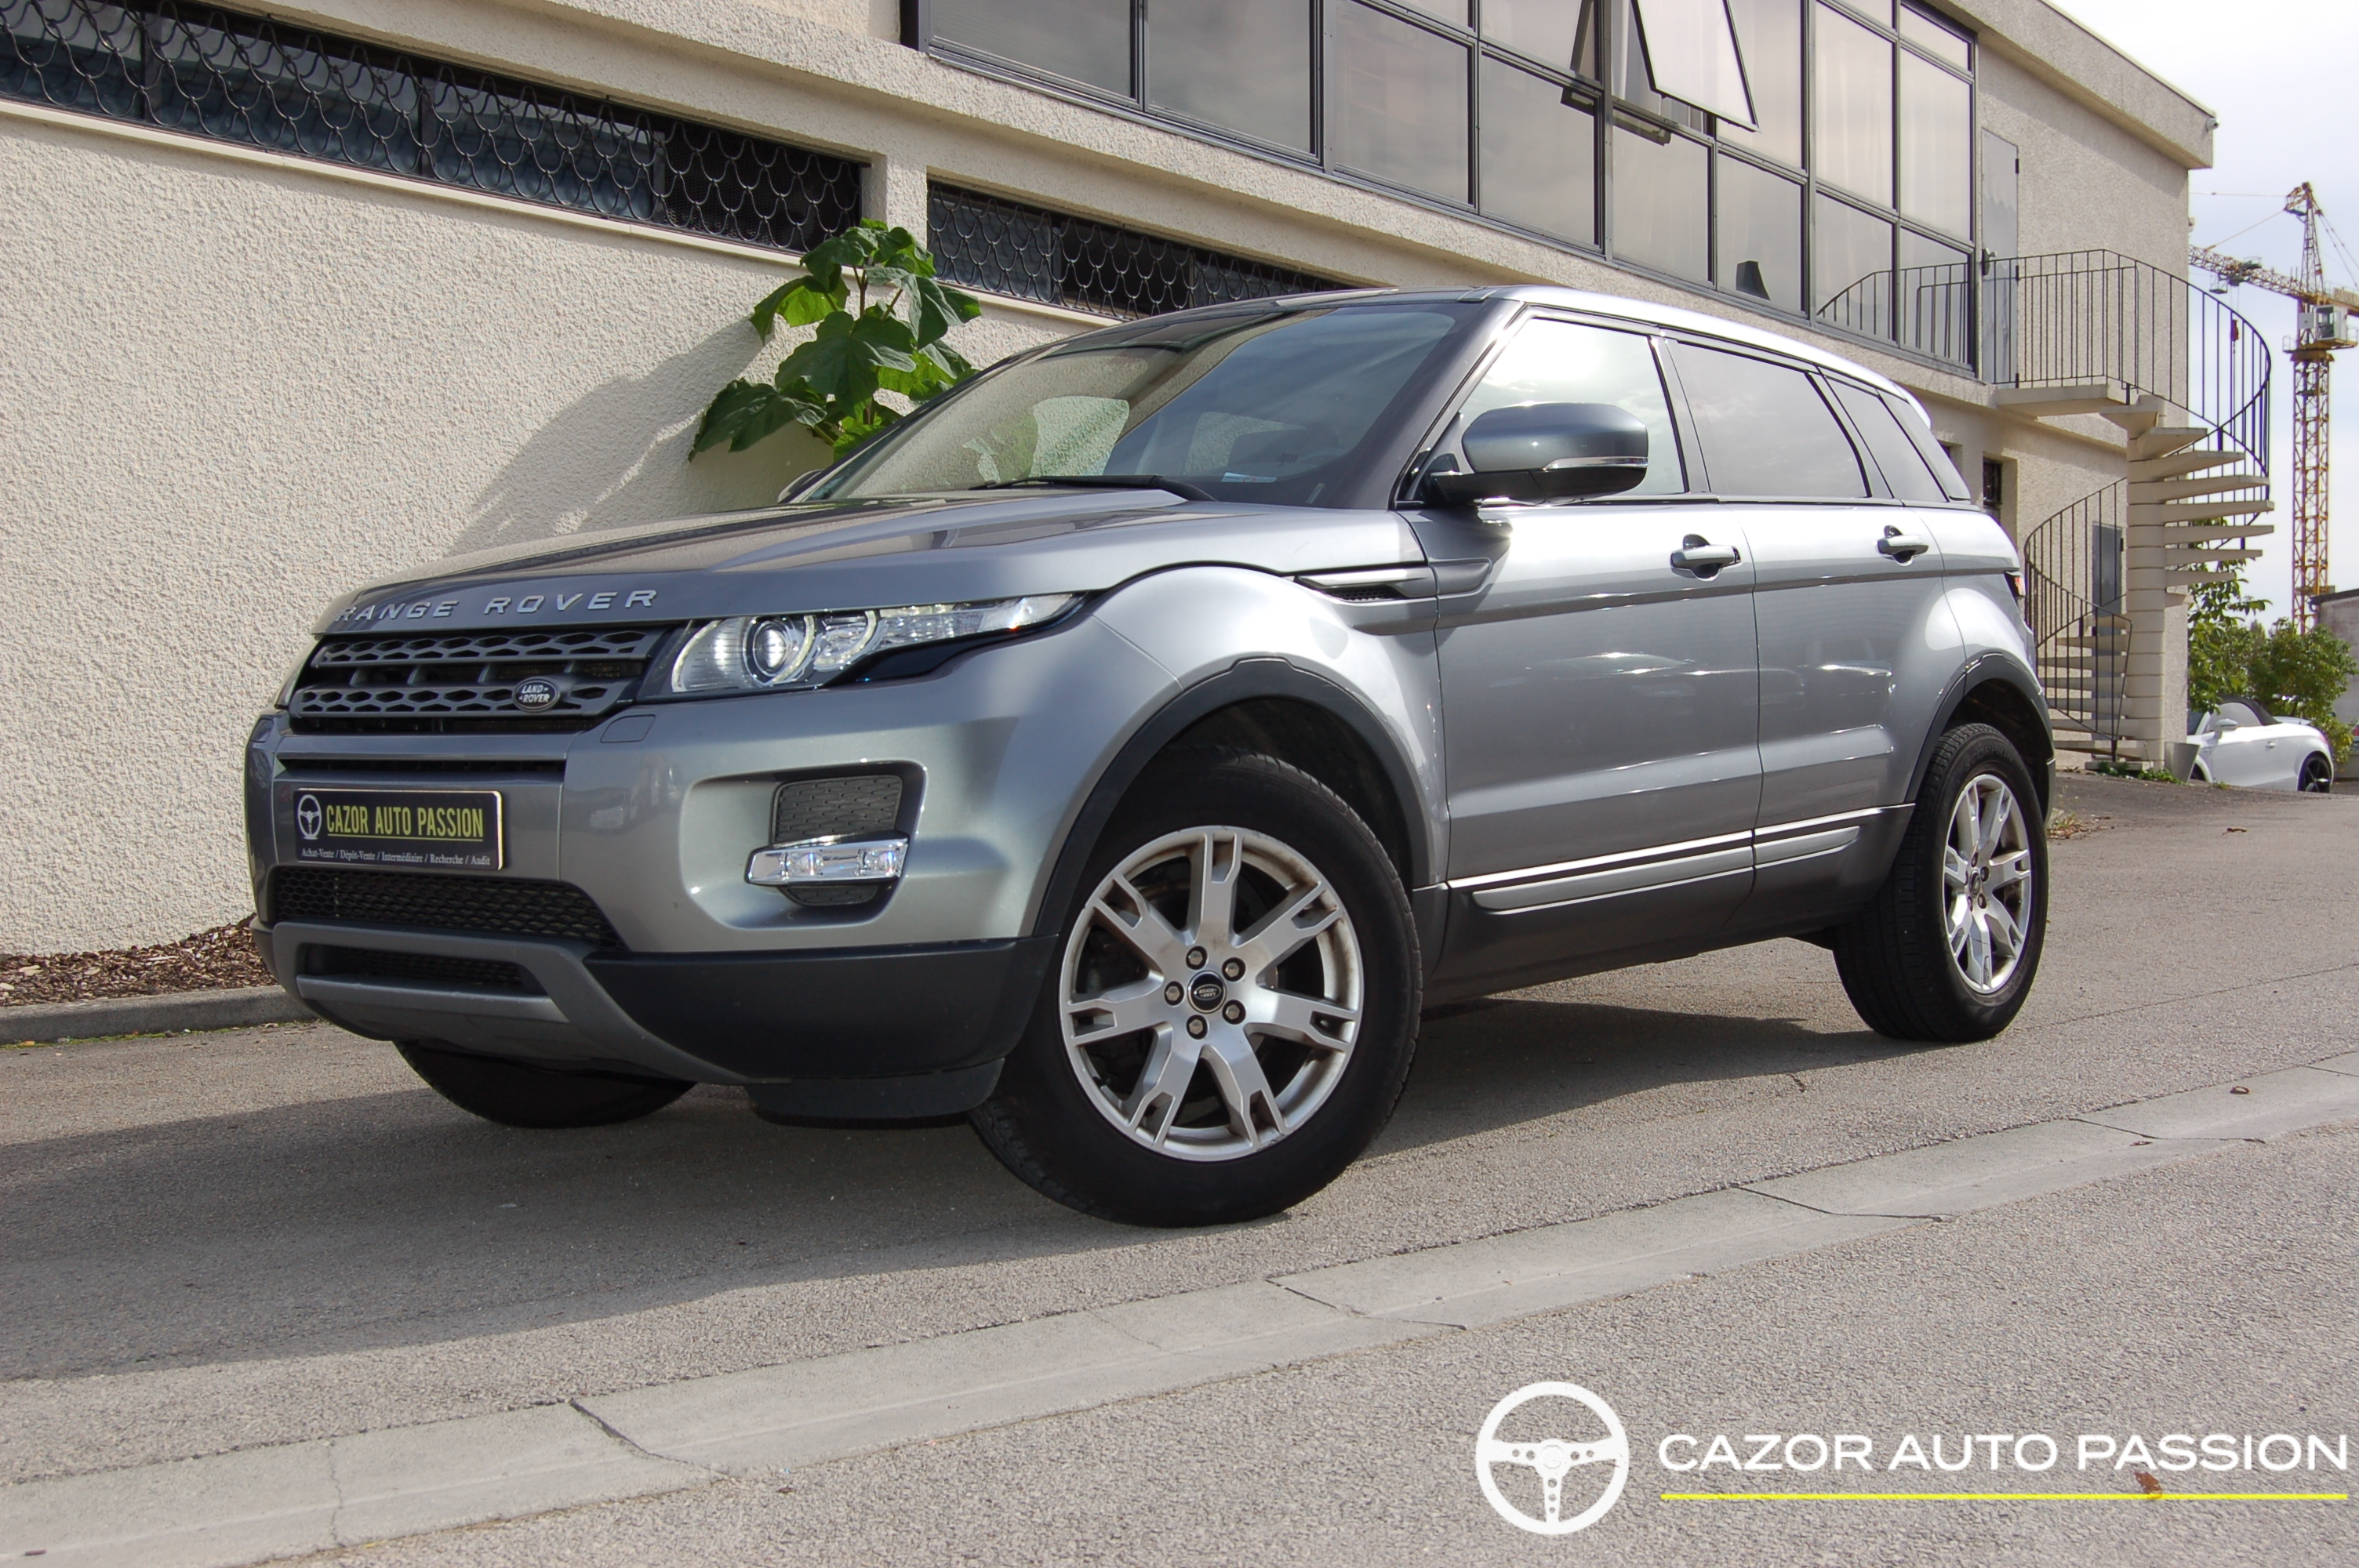 range rover evoque 5p 2 2 td4 4wd 150cv pure cazor auto passion. Black Bedroom Furniture Sets. Home Design Ideas